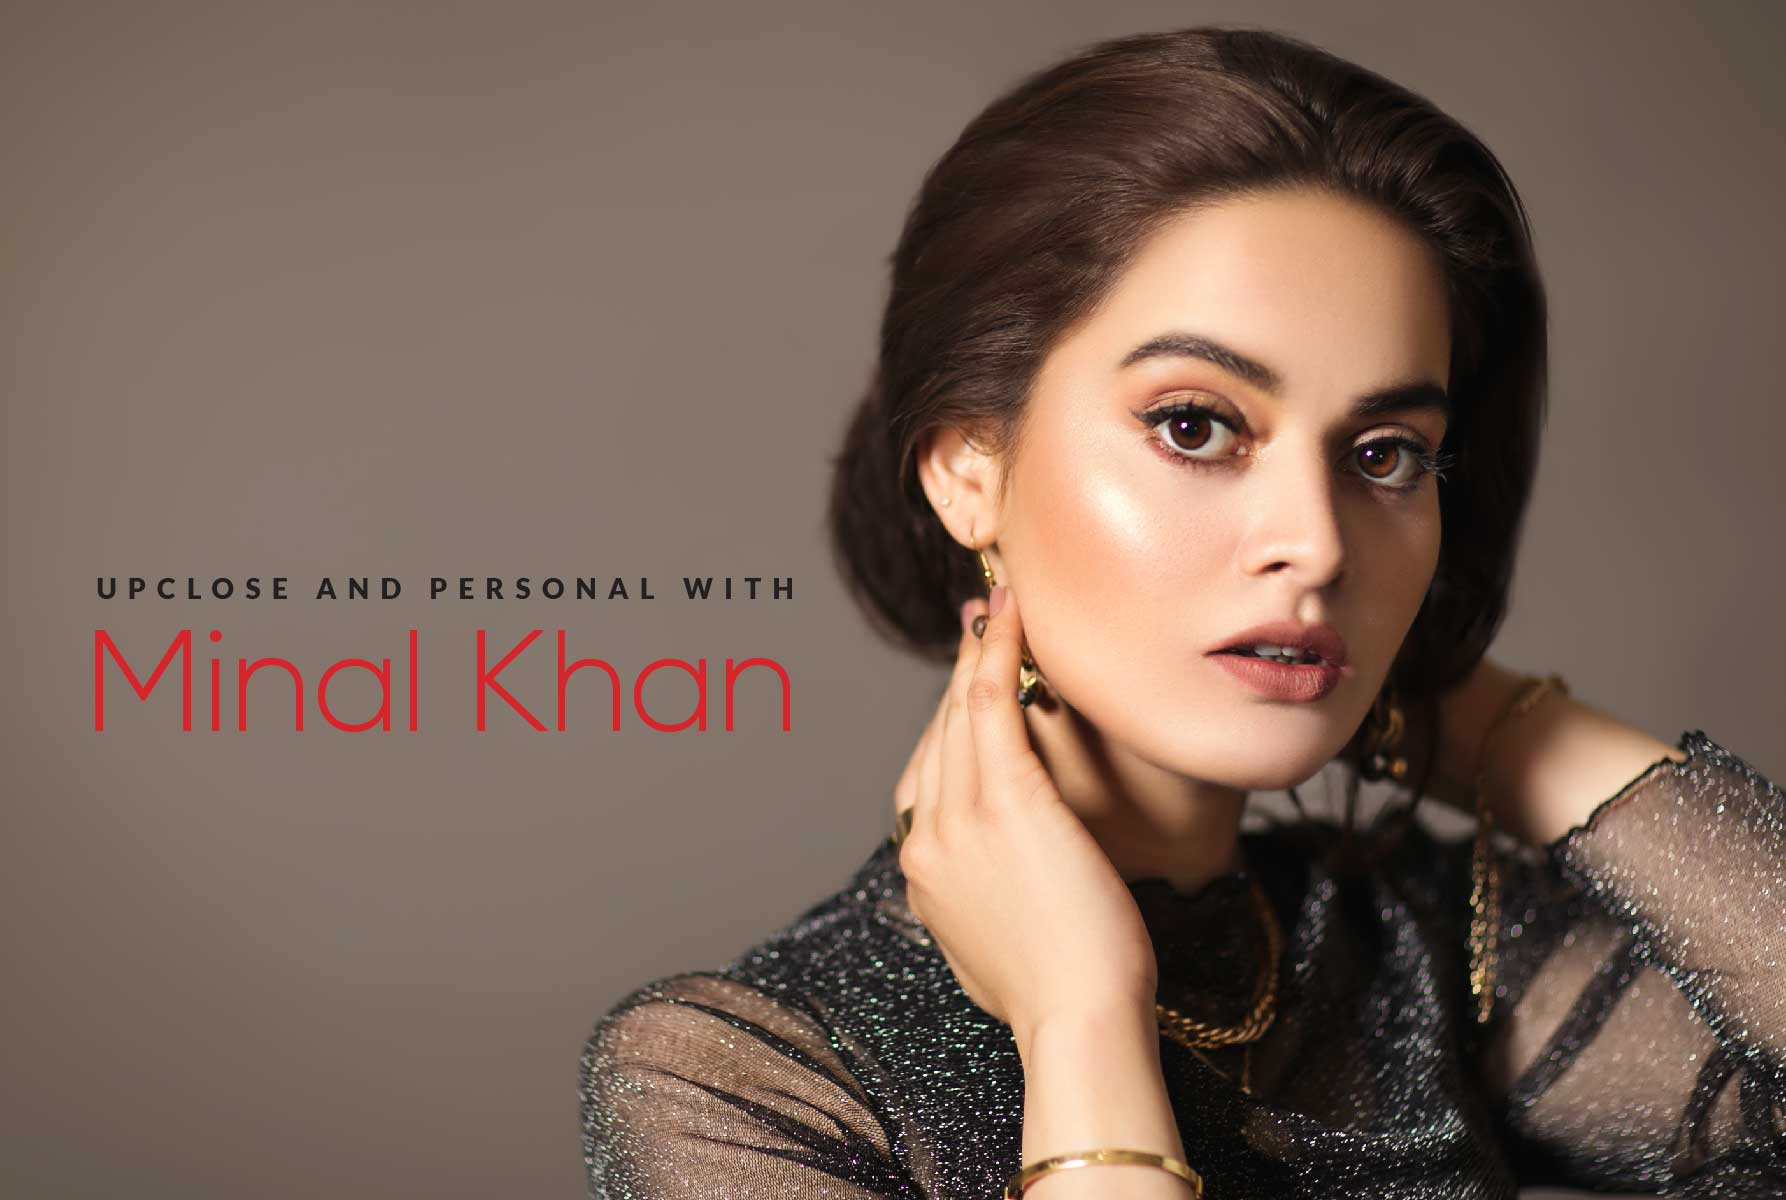 Upclose and personal with Minal Khan